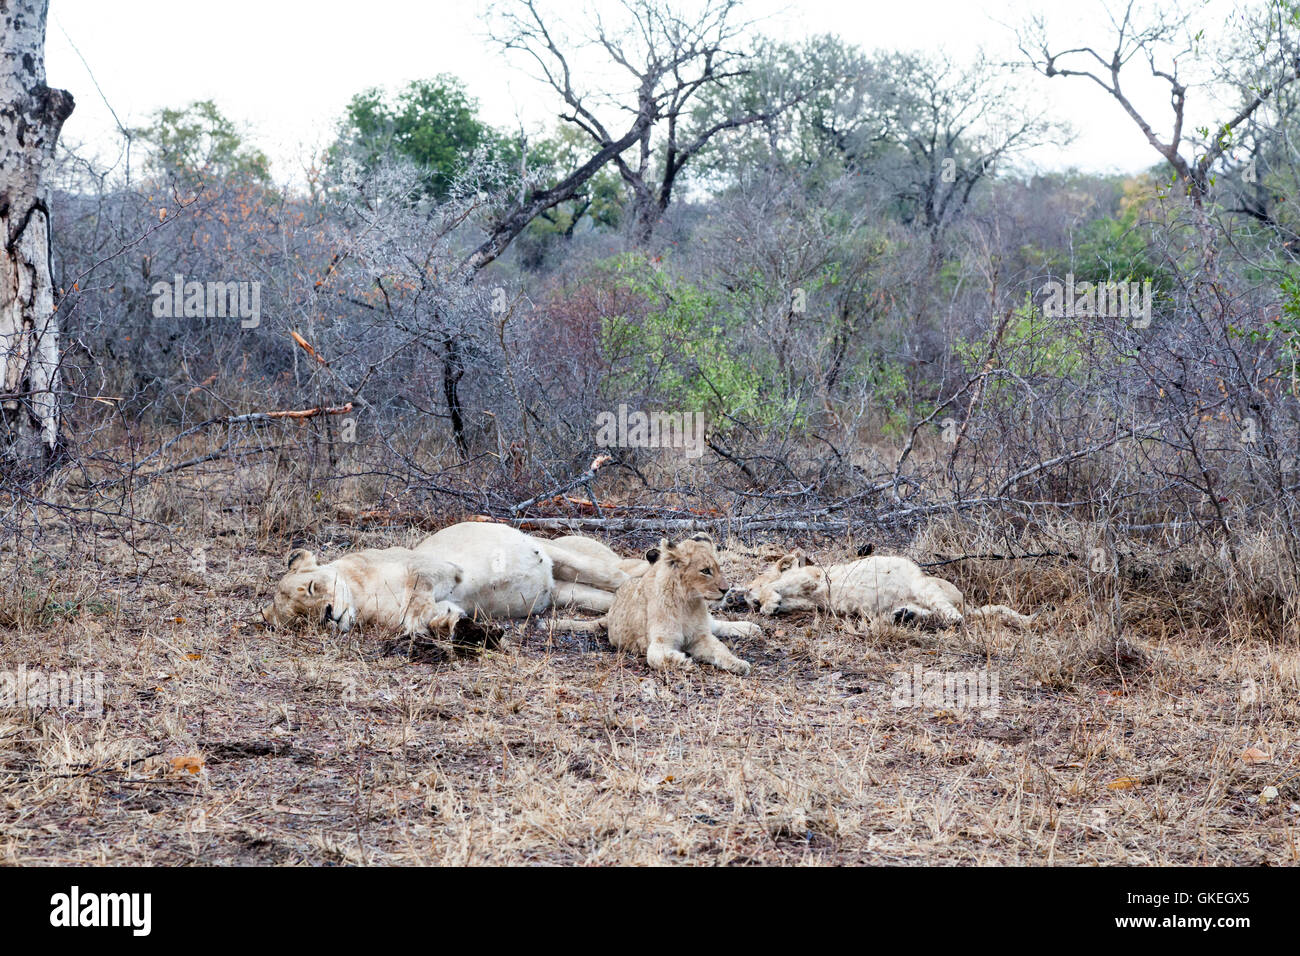 Otthawa pride lions resting after gorging on a kudu, Exeter Private Game Reserve, South Africa - Stock Image